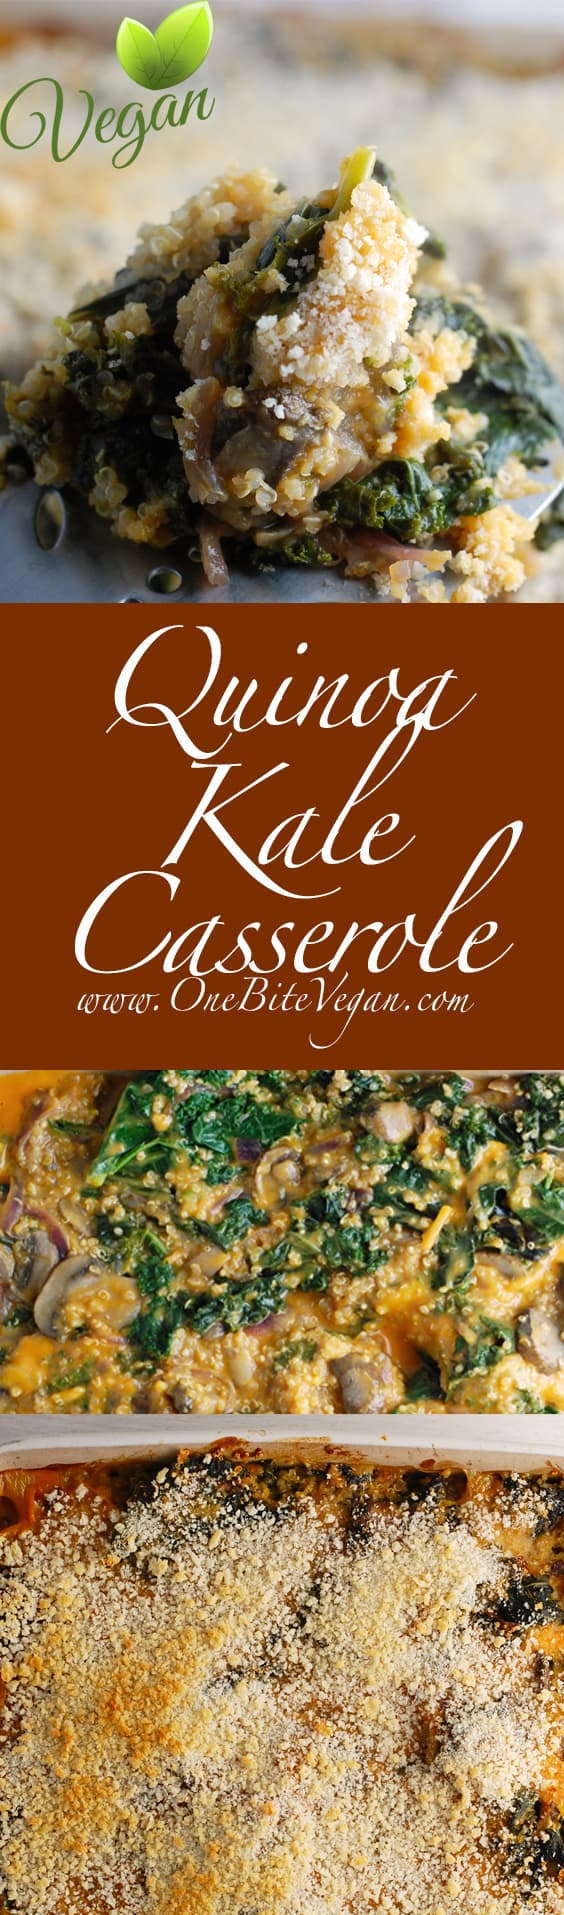 Vegan quinoa kale casserole. Another healthy quinoa casserole made with kale, onions, and mushrooms and without any added oils or fats. Great healthy addition to your weekly meal plan.